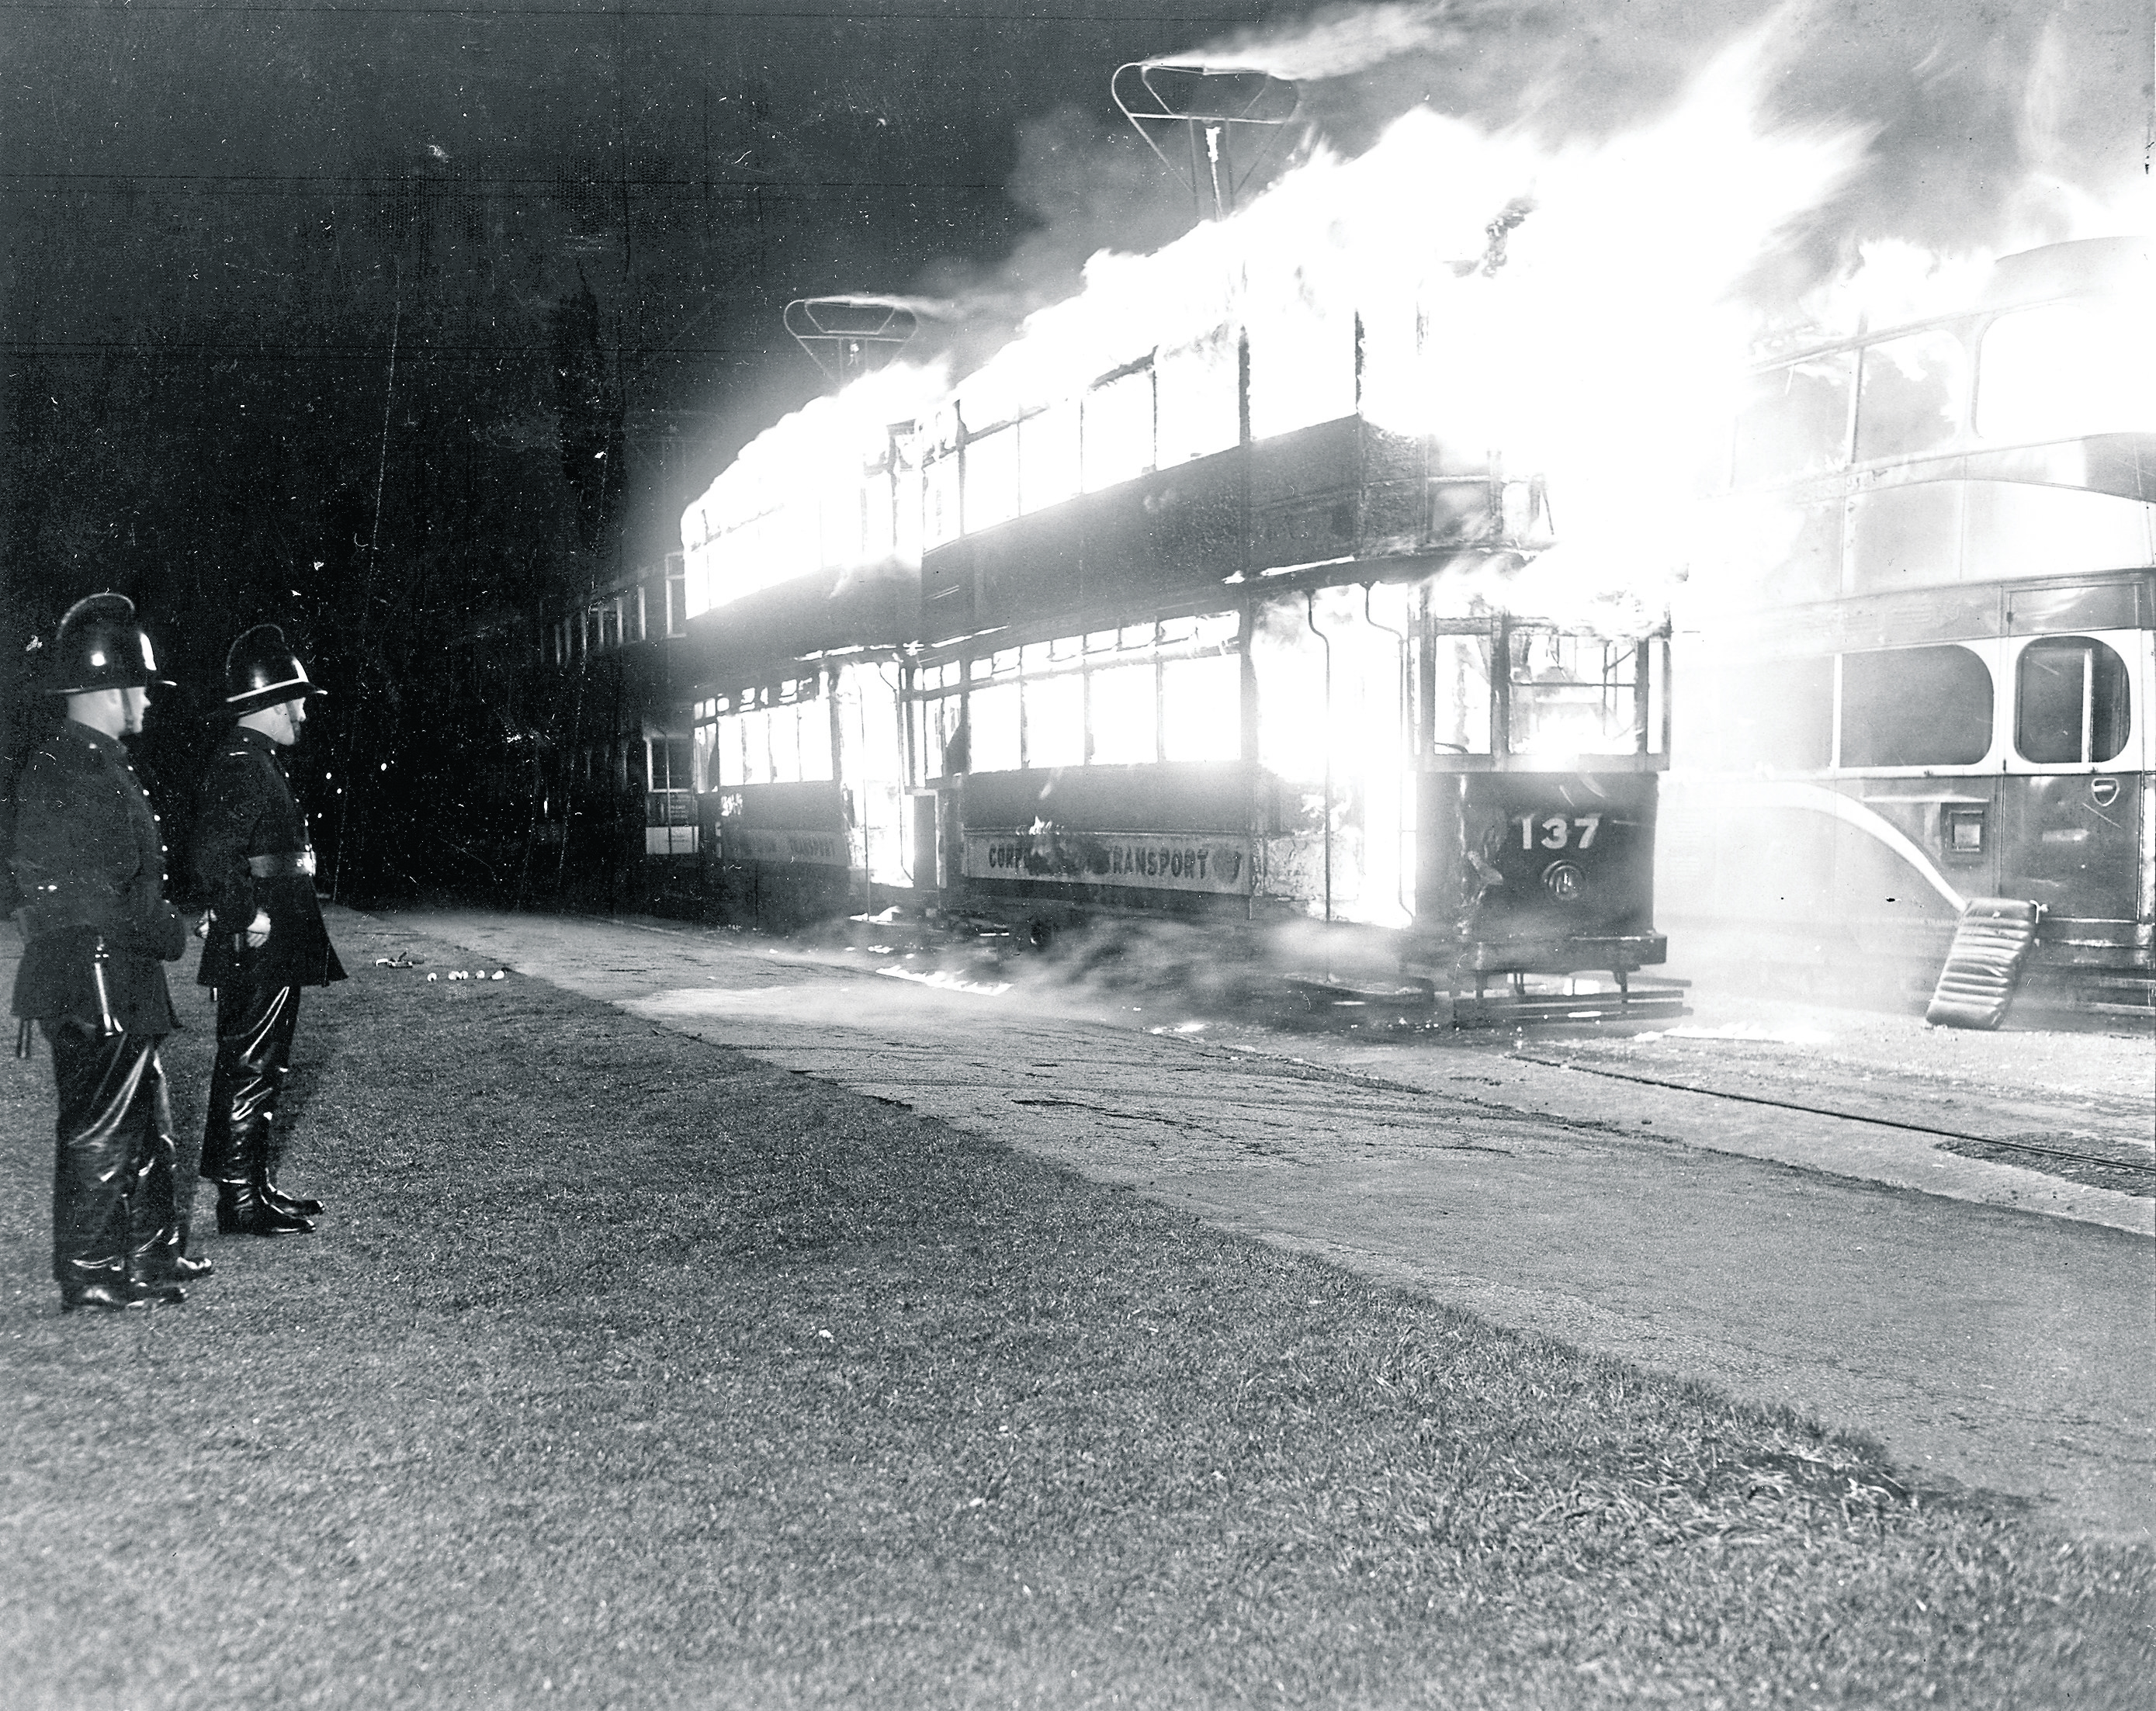 Firefighters on standby stand by and watch as the intense conflagration consumes the trams.